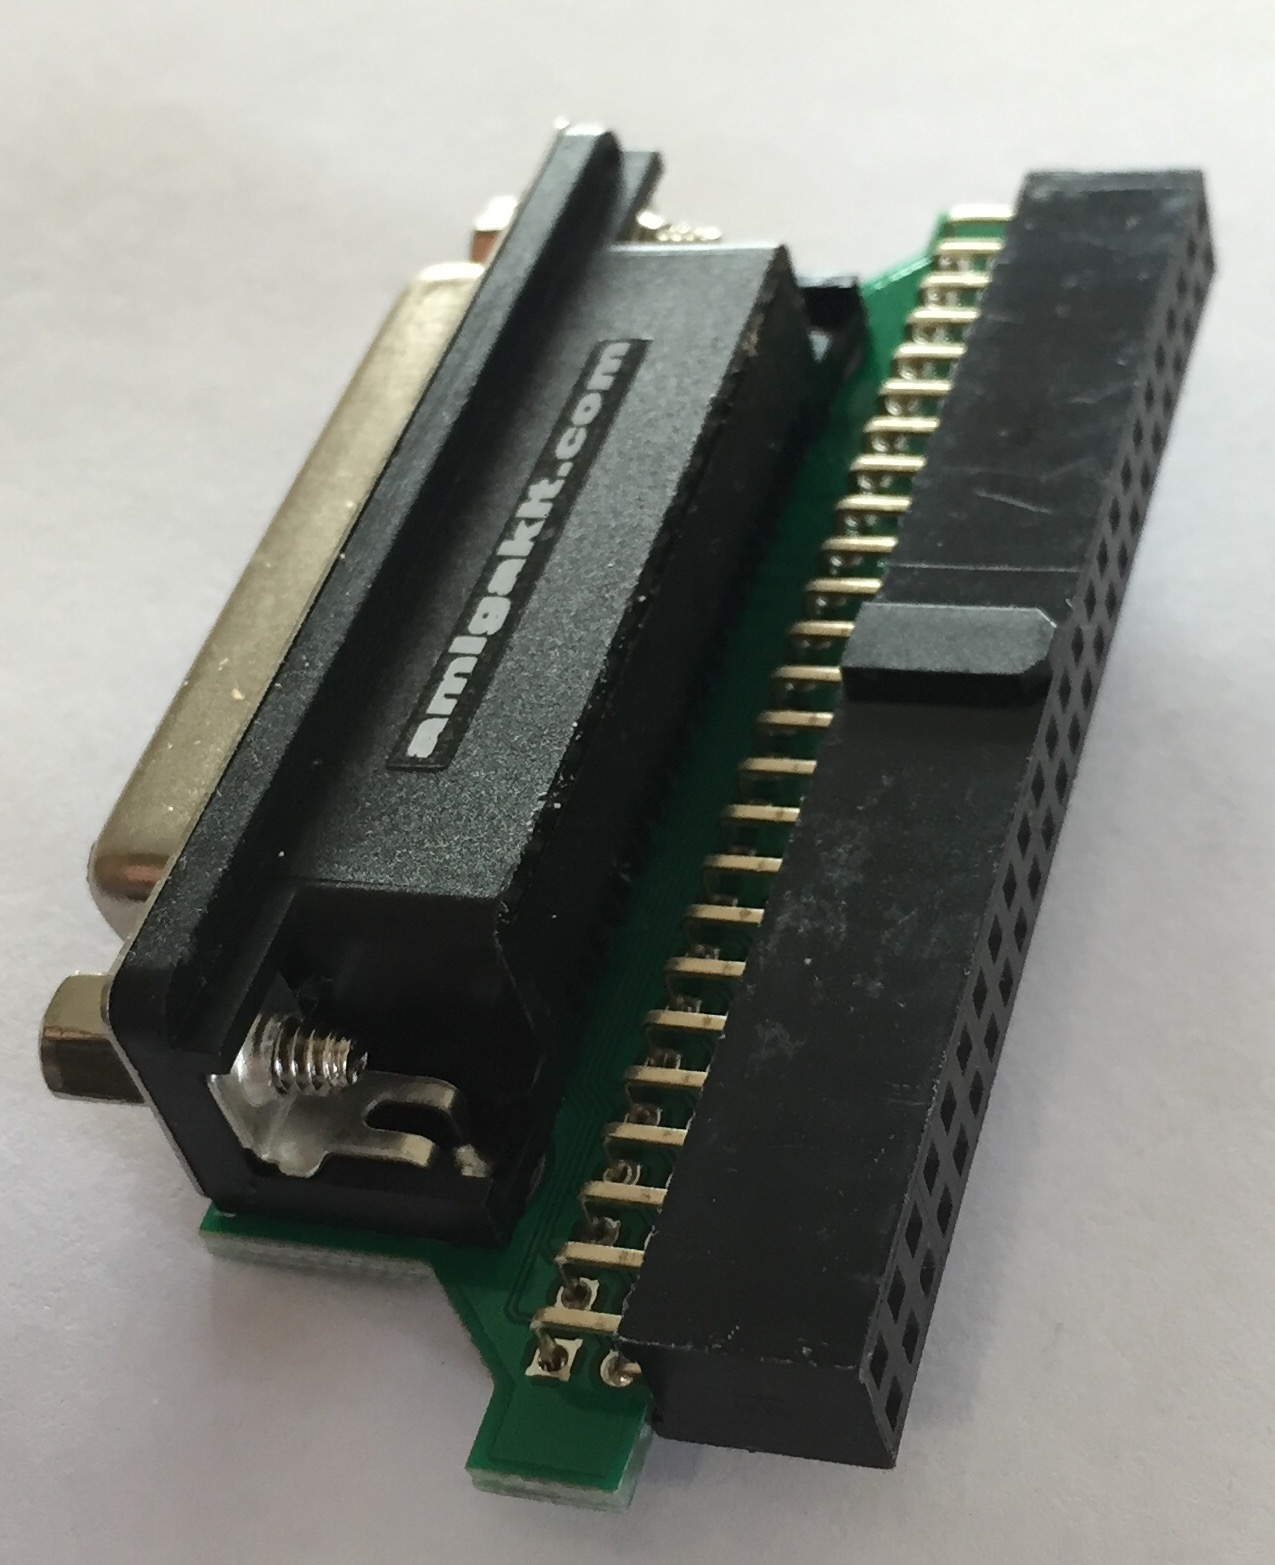 25-pin Female DSub to 50-way IDC Female SCSI Adapter